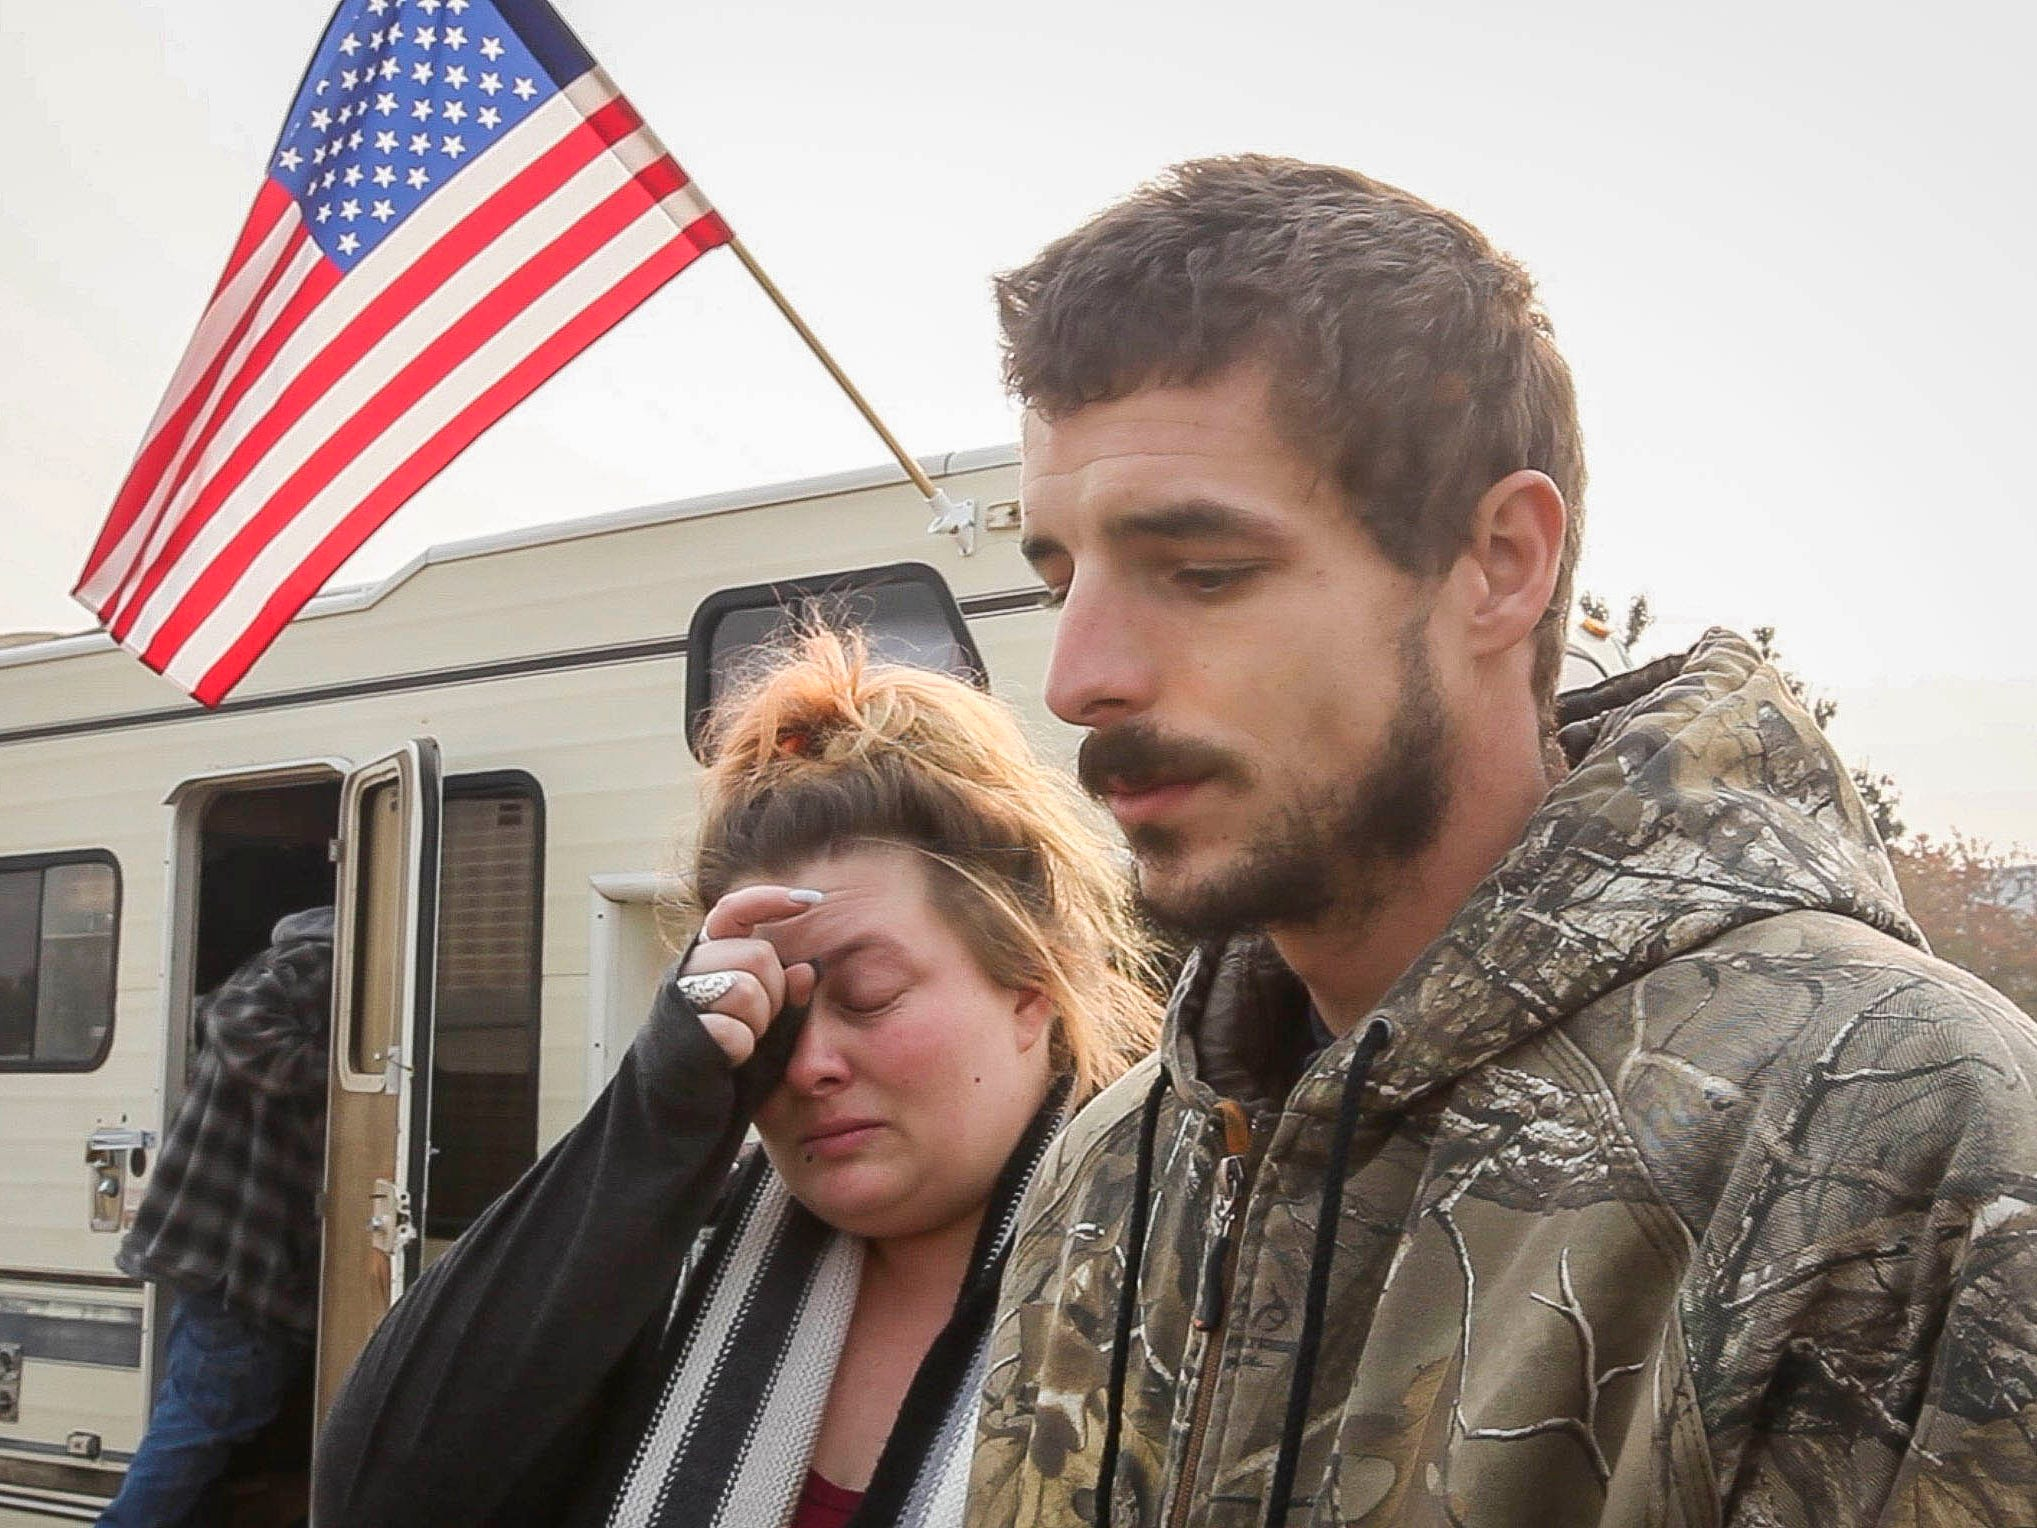 Ryan Belcher, left, and his wife Casey sit next to a pick-up truck that Ryan's boss loaned them. The Belcher family lost their home and vehicles in the Camp Fire. The children sleep in the truck at night and the parents share a small tent in a field next to the Walmart in Chico, Calif., Nov. 17, 2018.